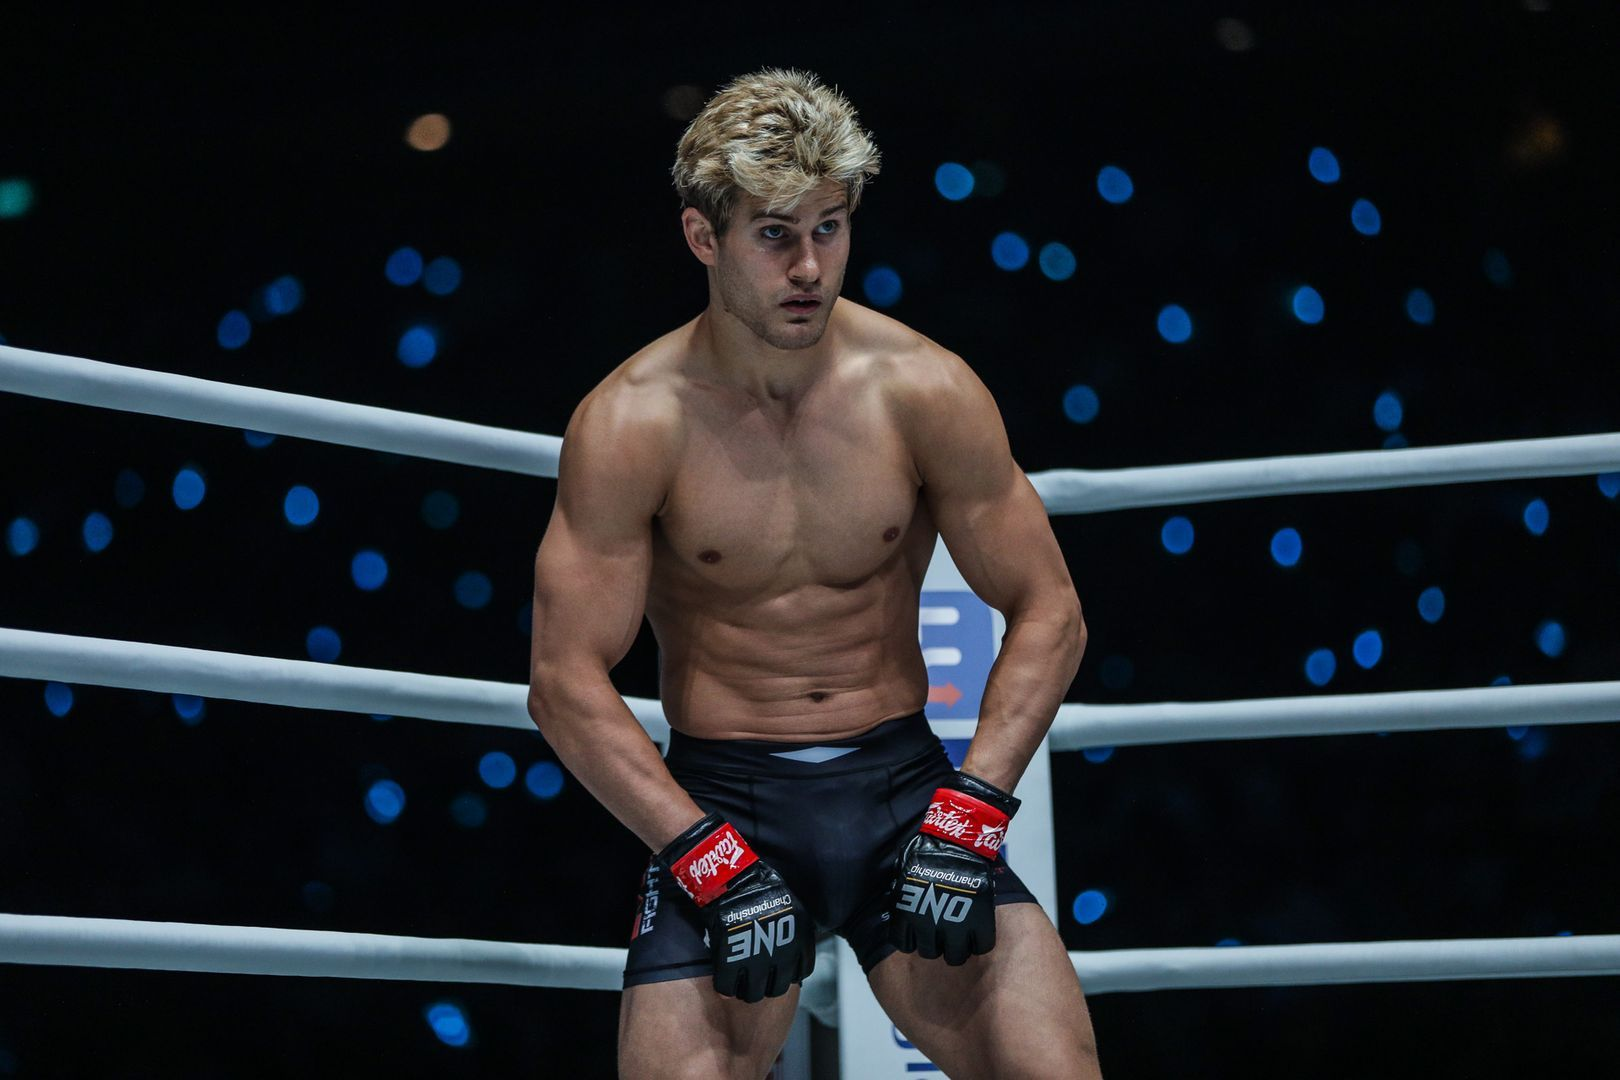 """Super"" Sage Northcutt prepares to make his debut in ONE Championship"